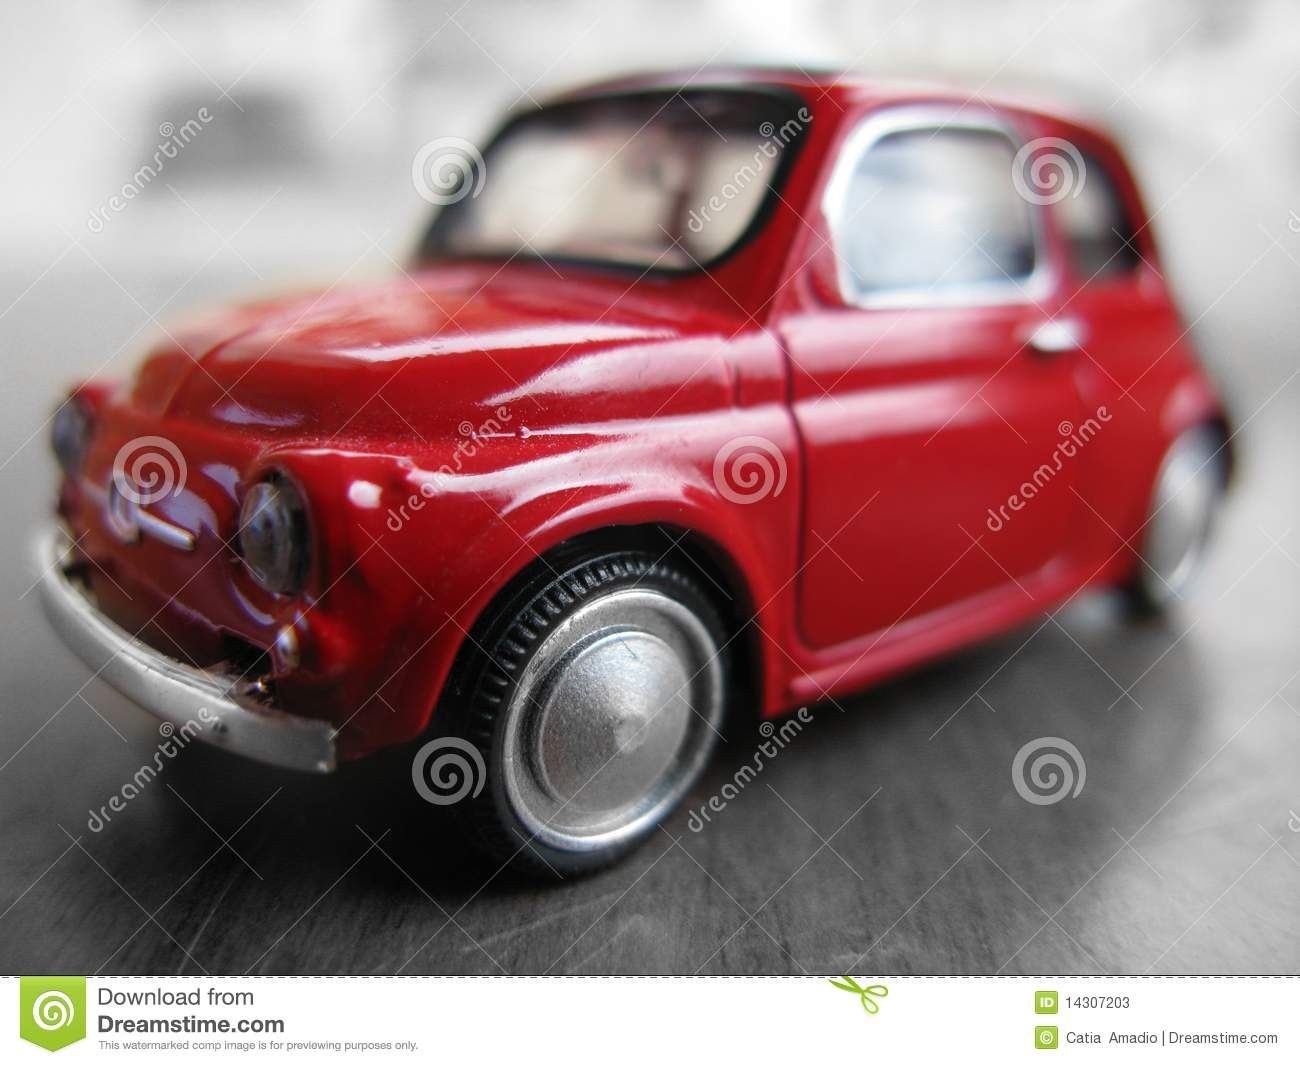 small red car stock photos